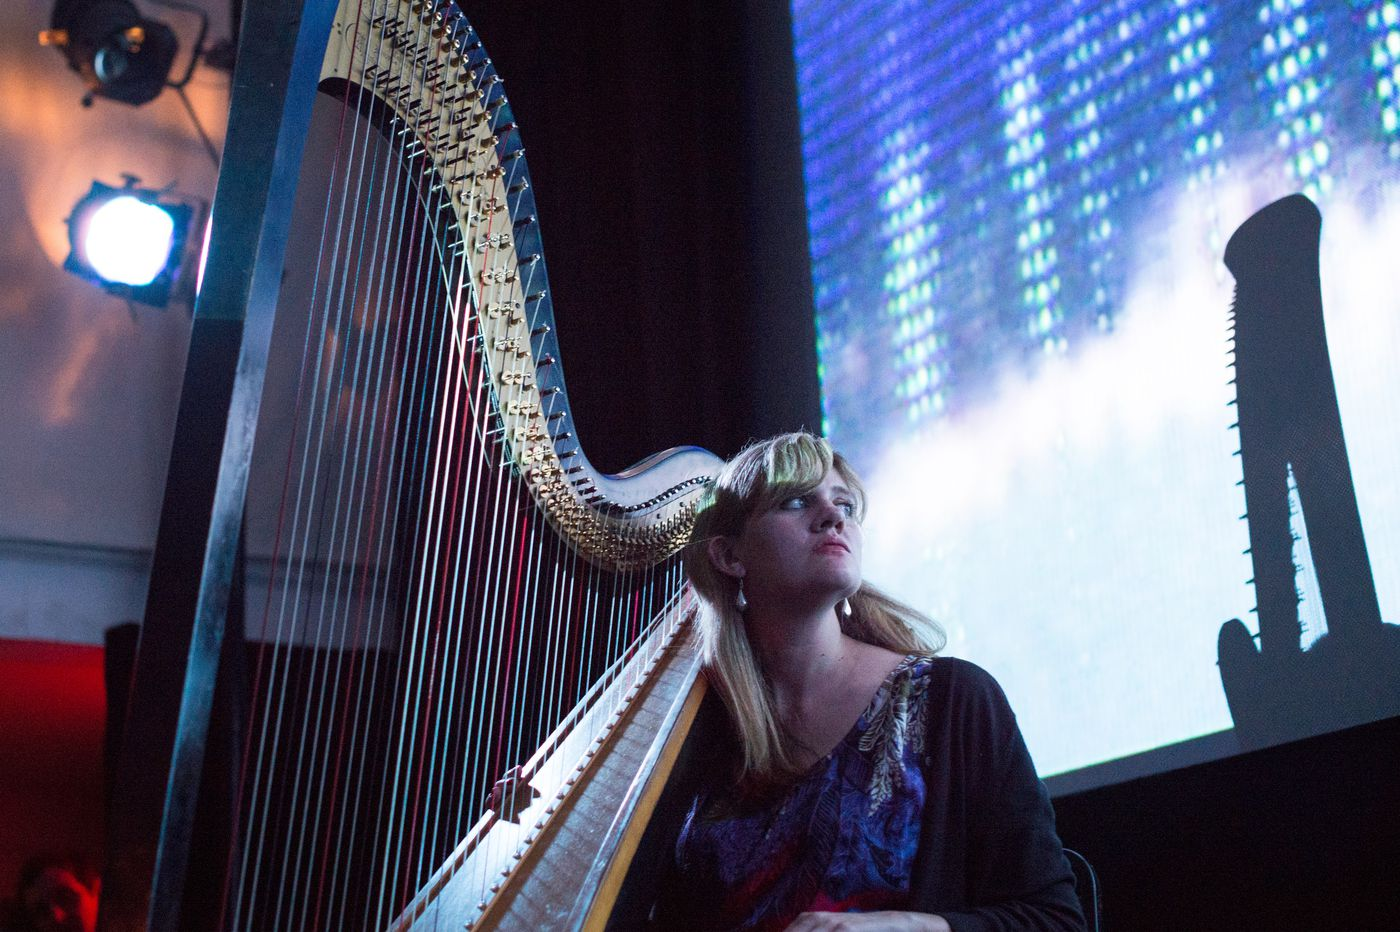 Mary Lattimore's harp makes all the guitar dudes jealous. But her instrument is also the reason she had to leave Philly